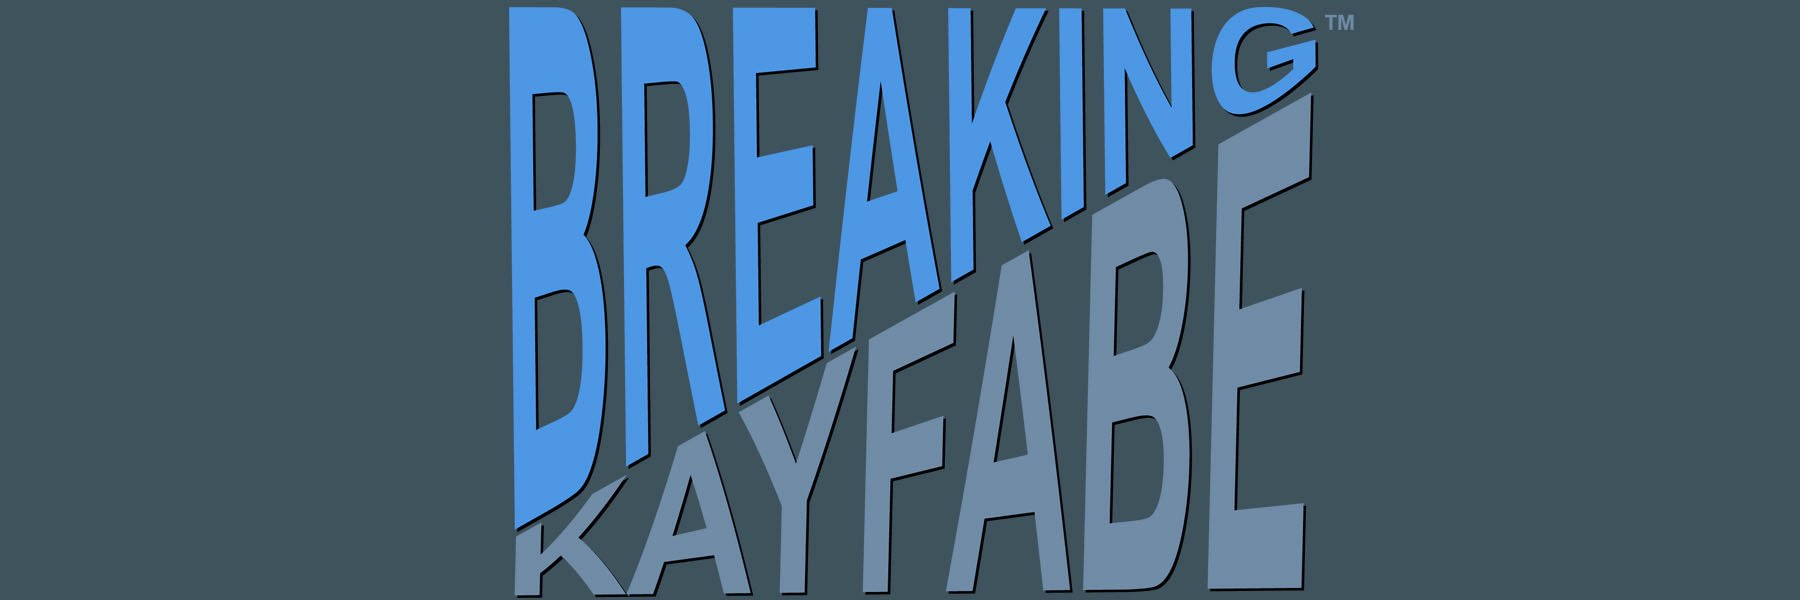 Breaking Kayfabe